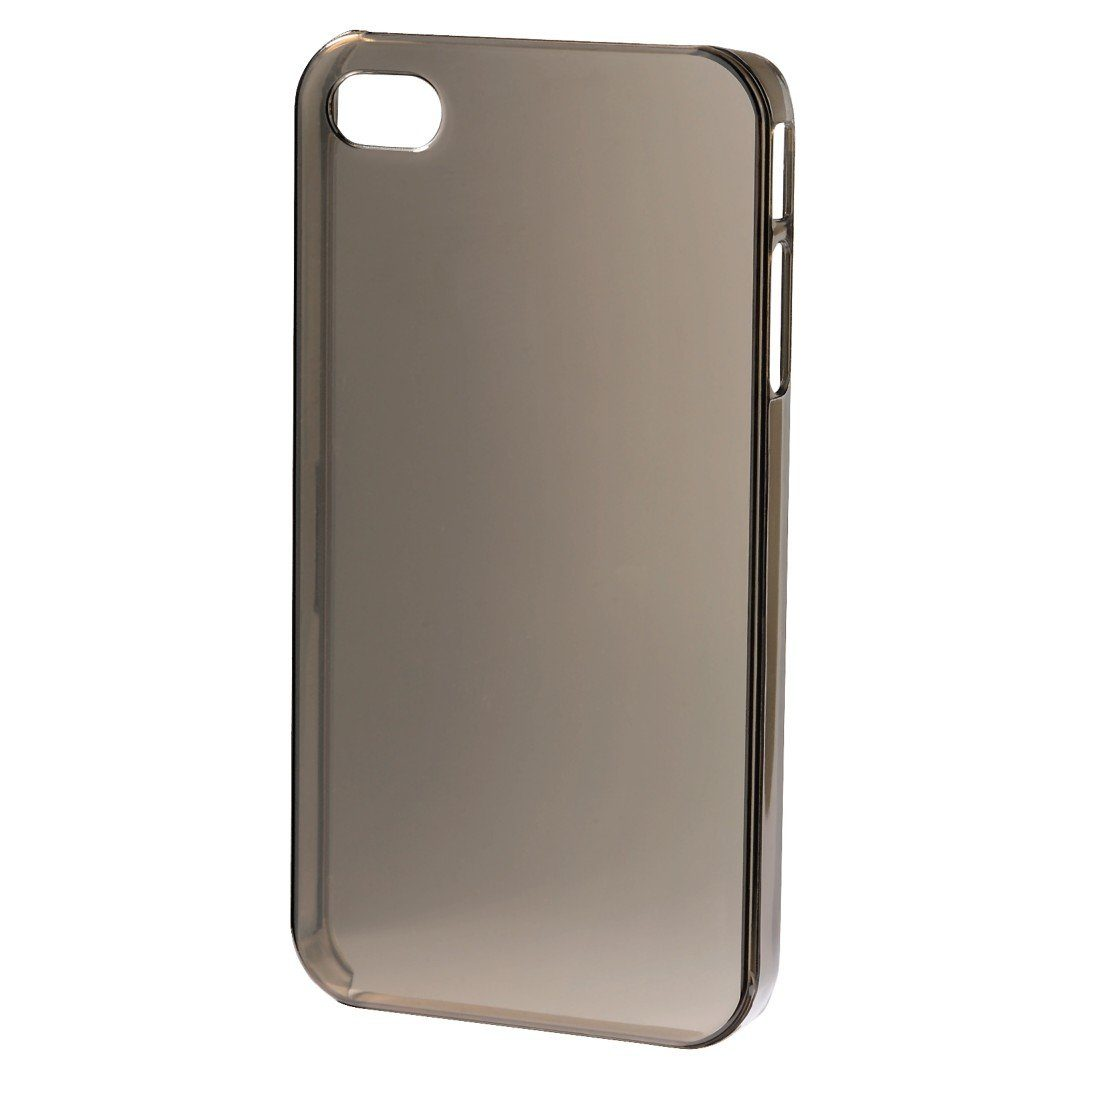 Hama Handy-Cover Crystal für Apple iPhone 5/5s/SE, Grau